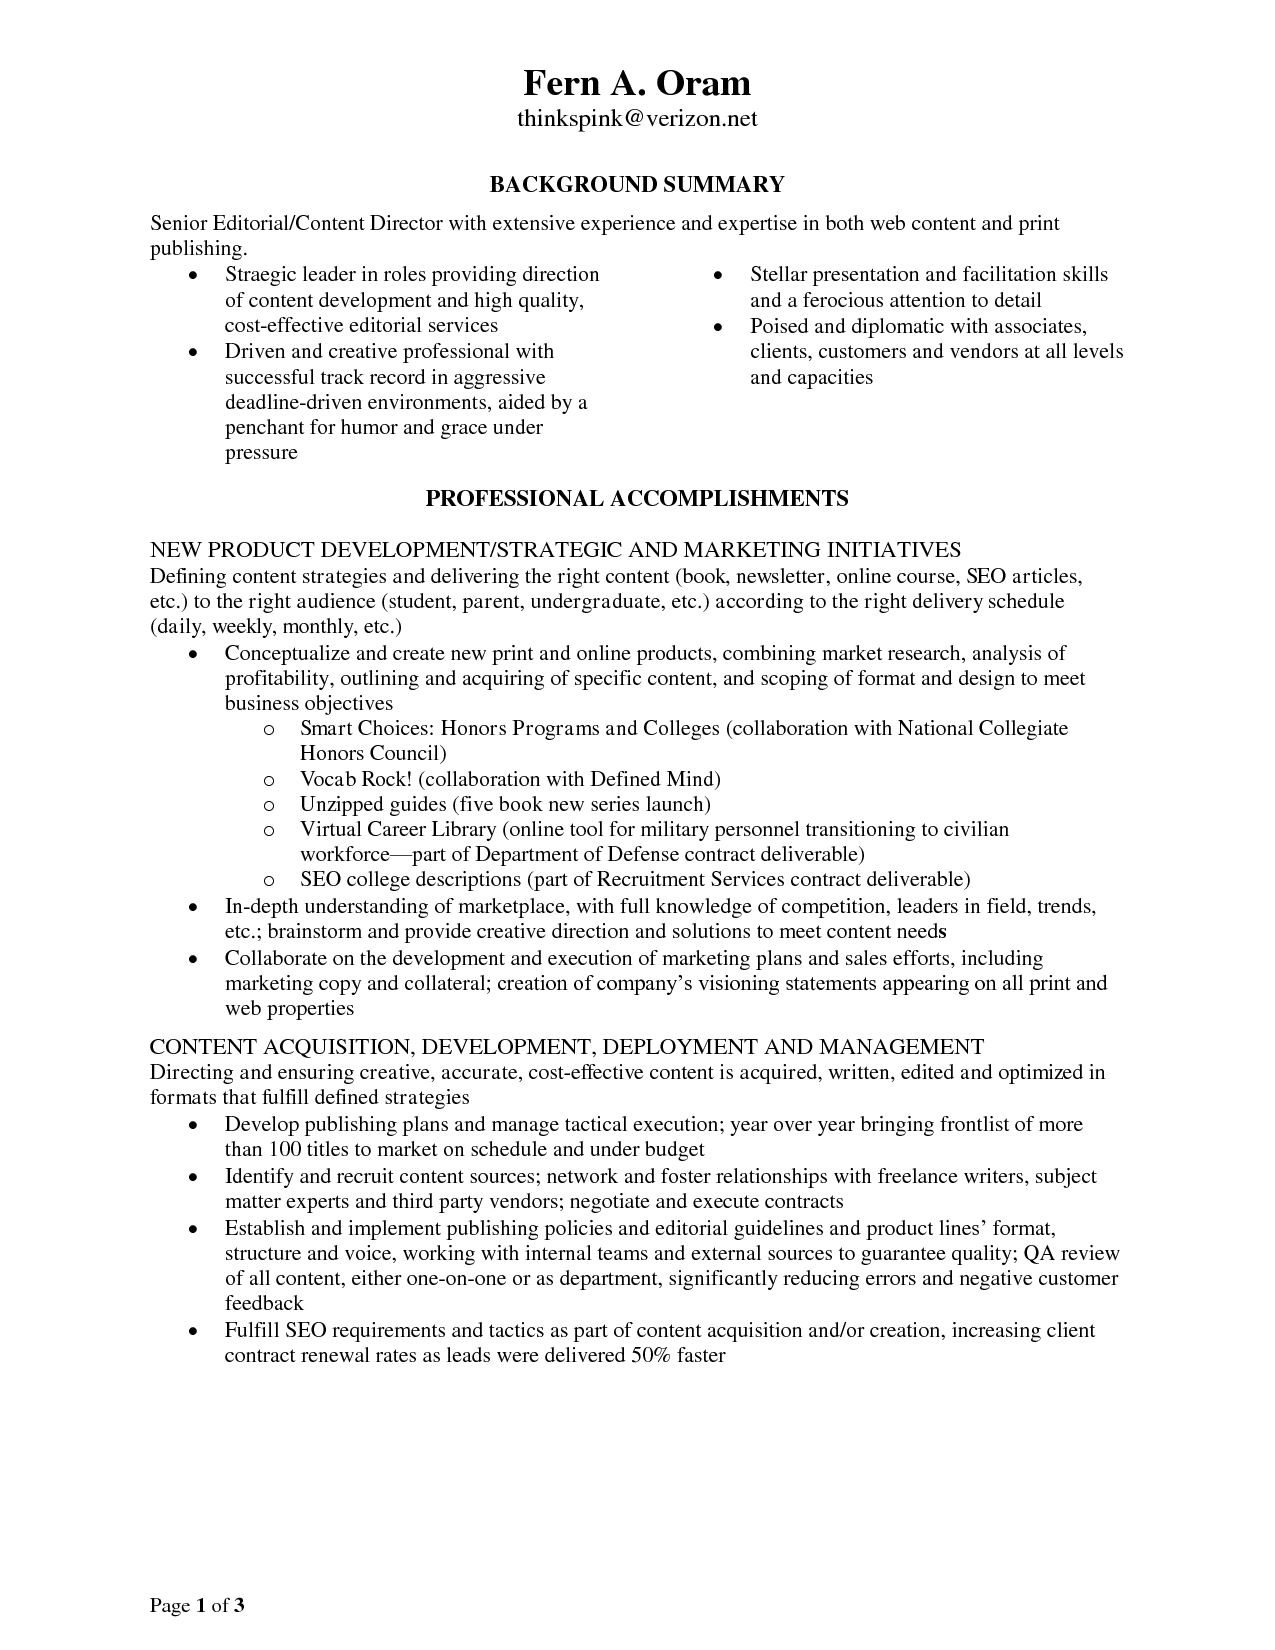 Sample Resume Templates Monster Resume Templates Free Monster Resume Templates Free